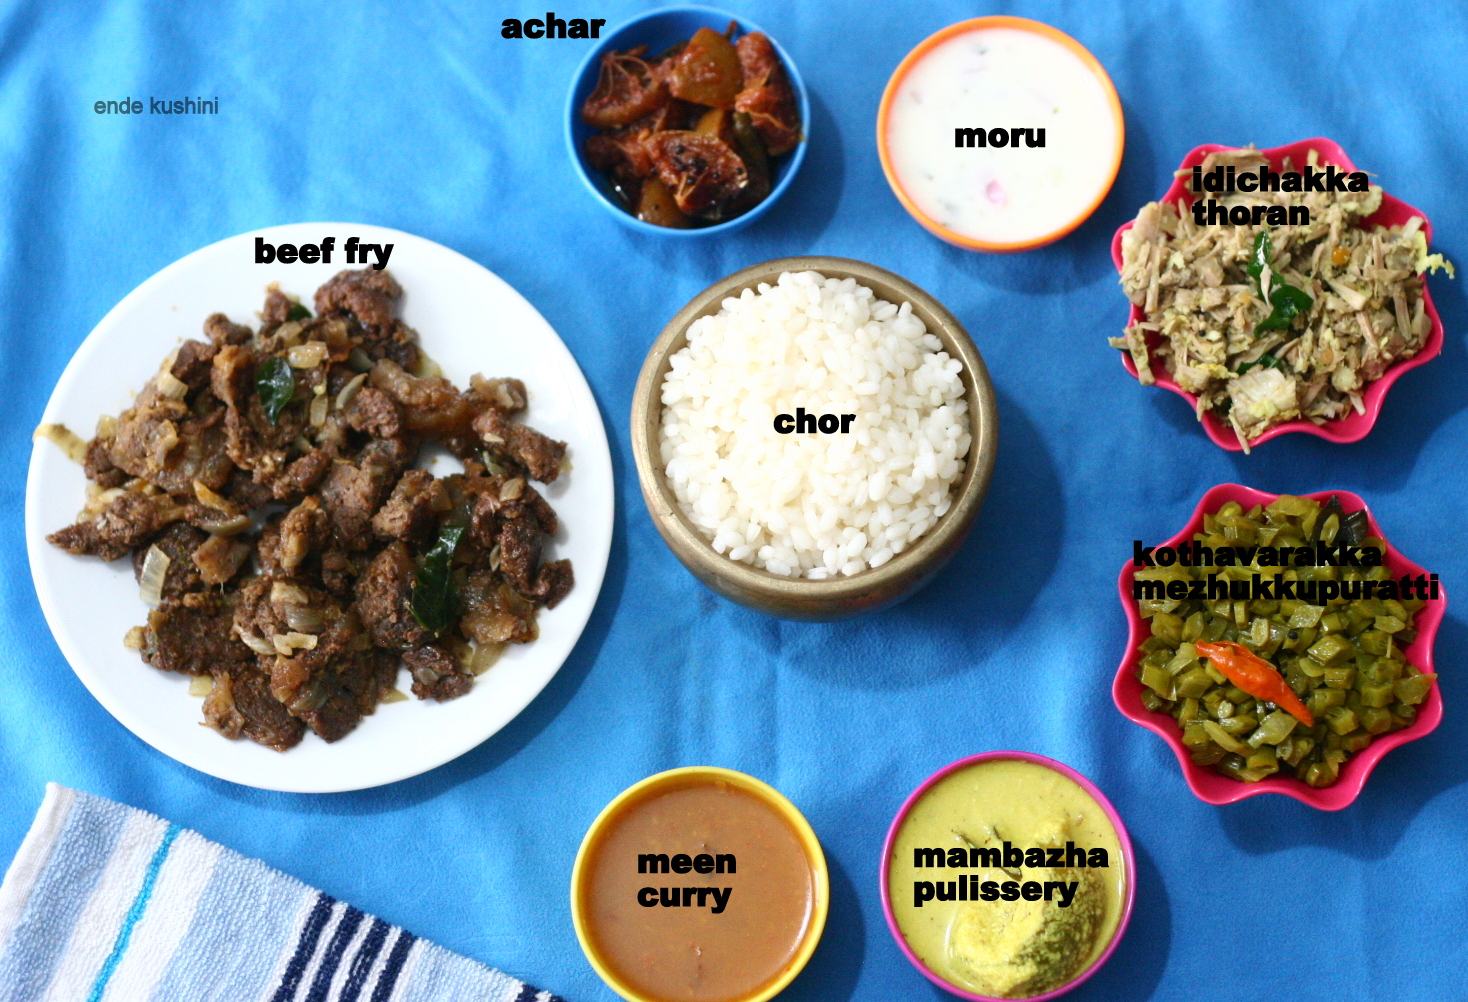 Other Non Veg Fry Item And Ofcourse With A Couple Of Vegetarian Dishes You Can Get The Below Shown Meal For 50 70 Rupees In Small Kerala Restaurants